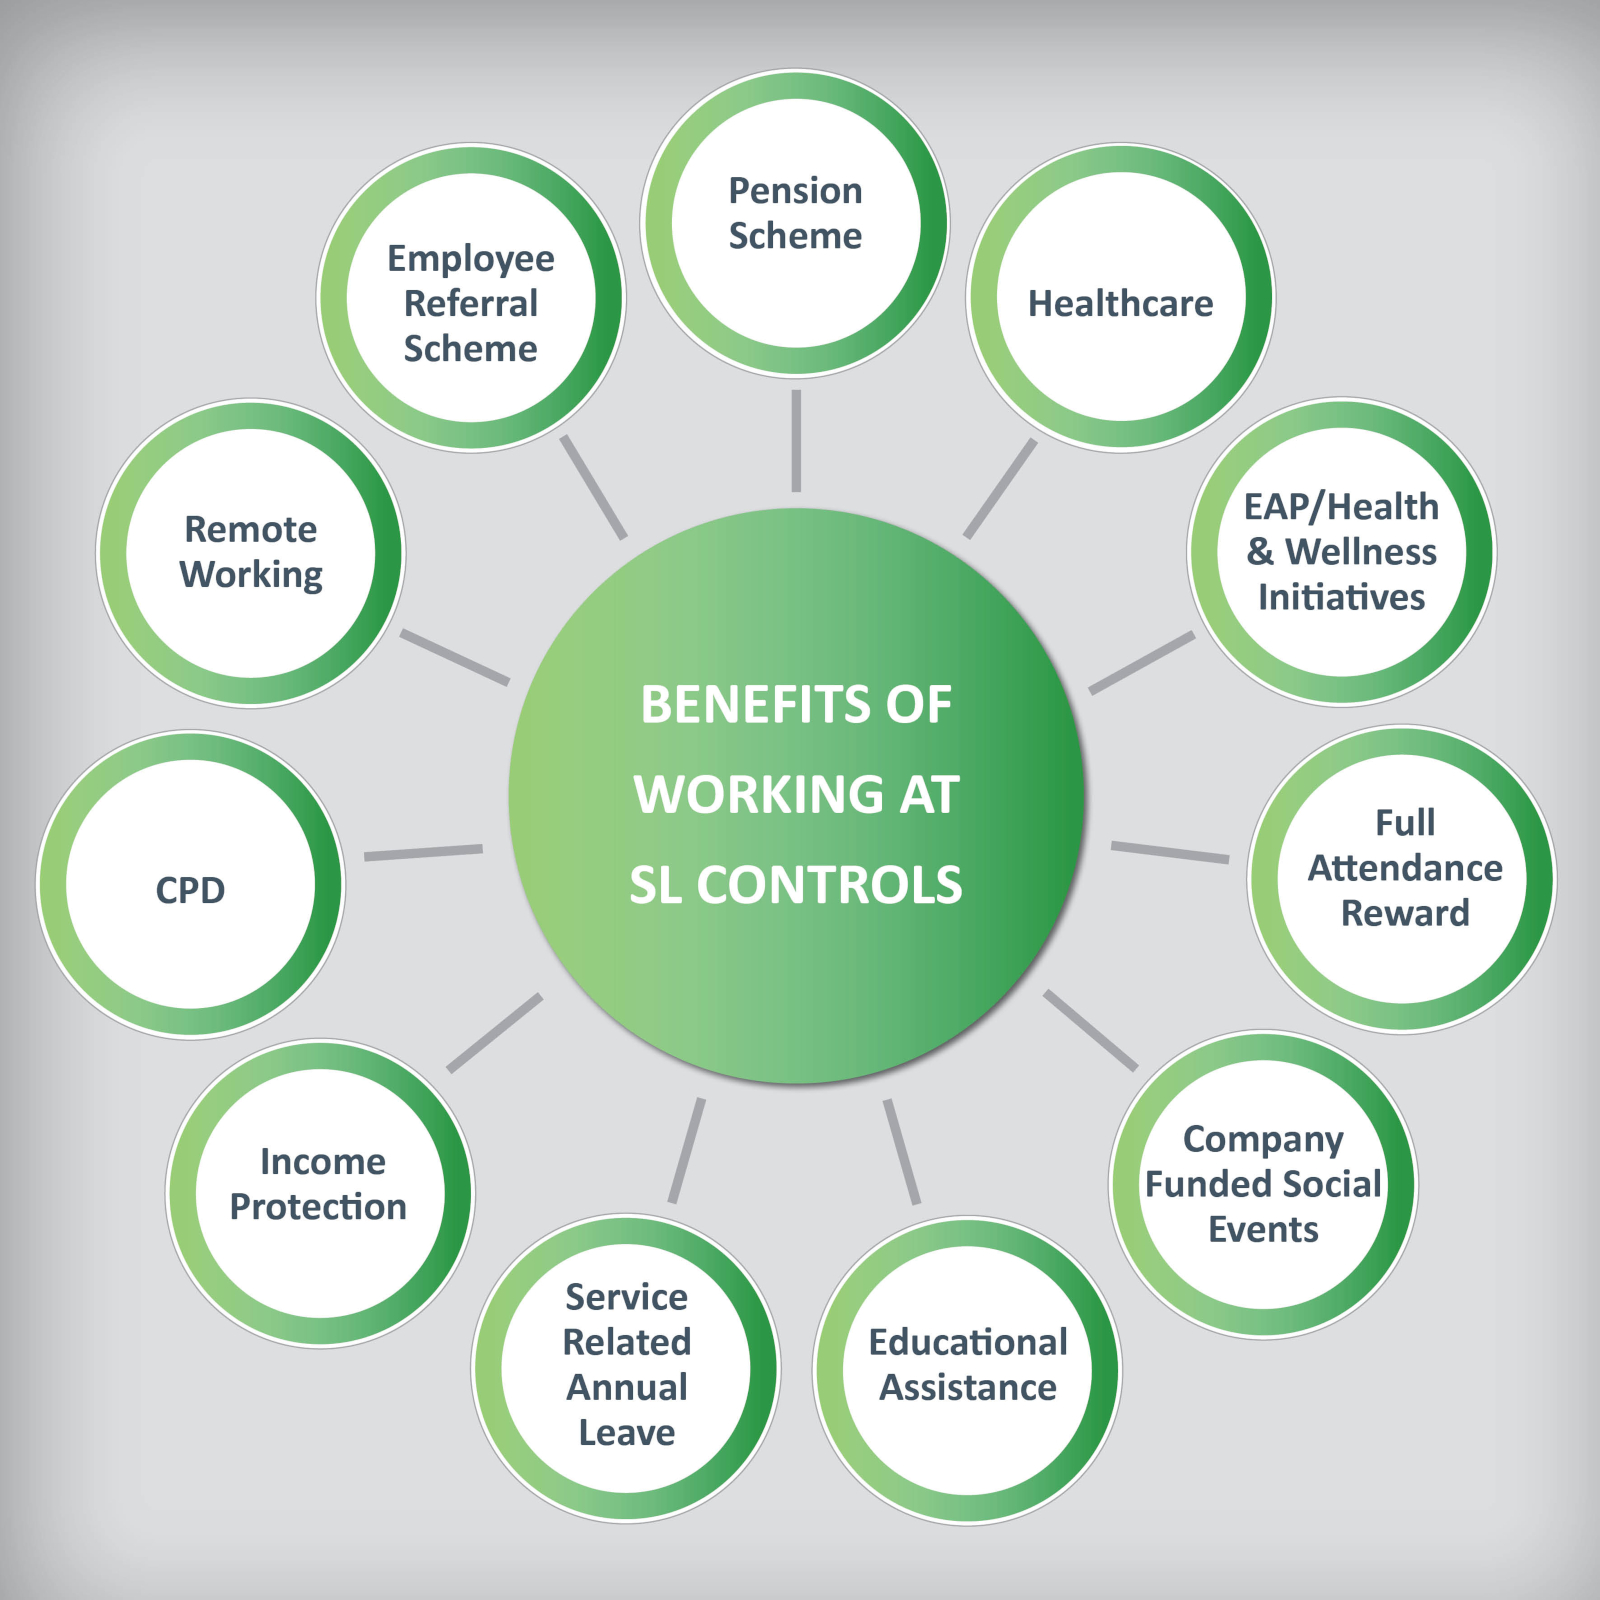 Benefits of Working at SL Controls graphic